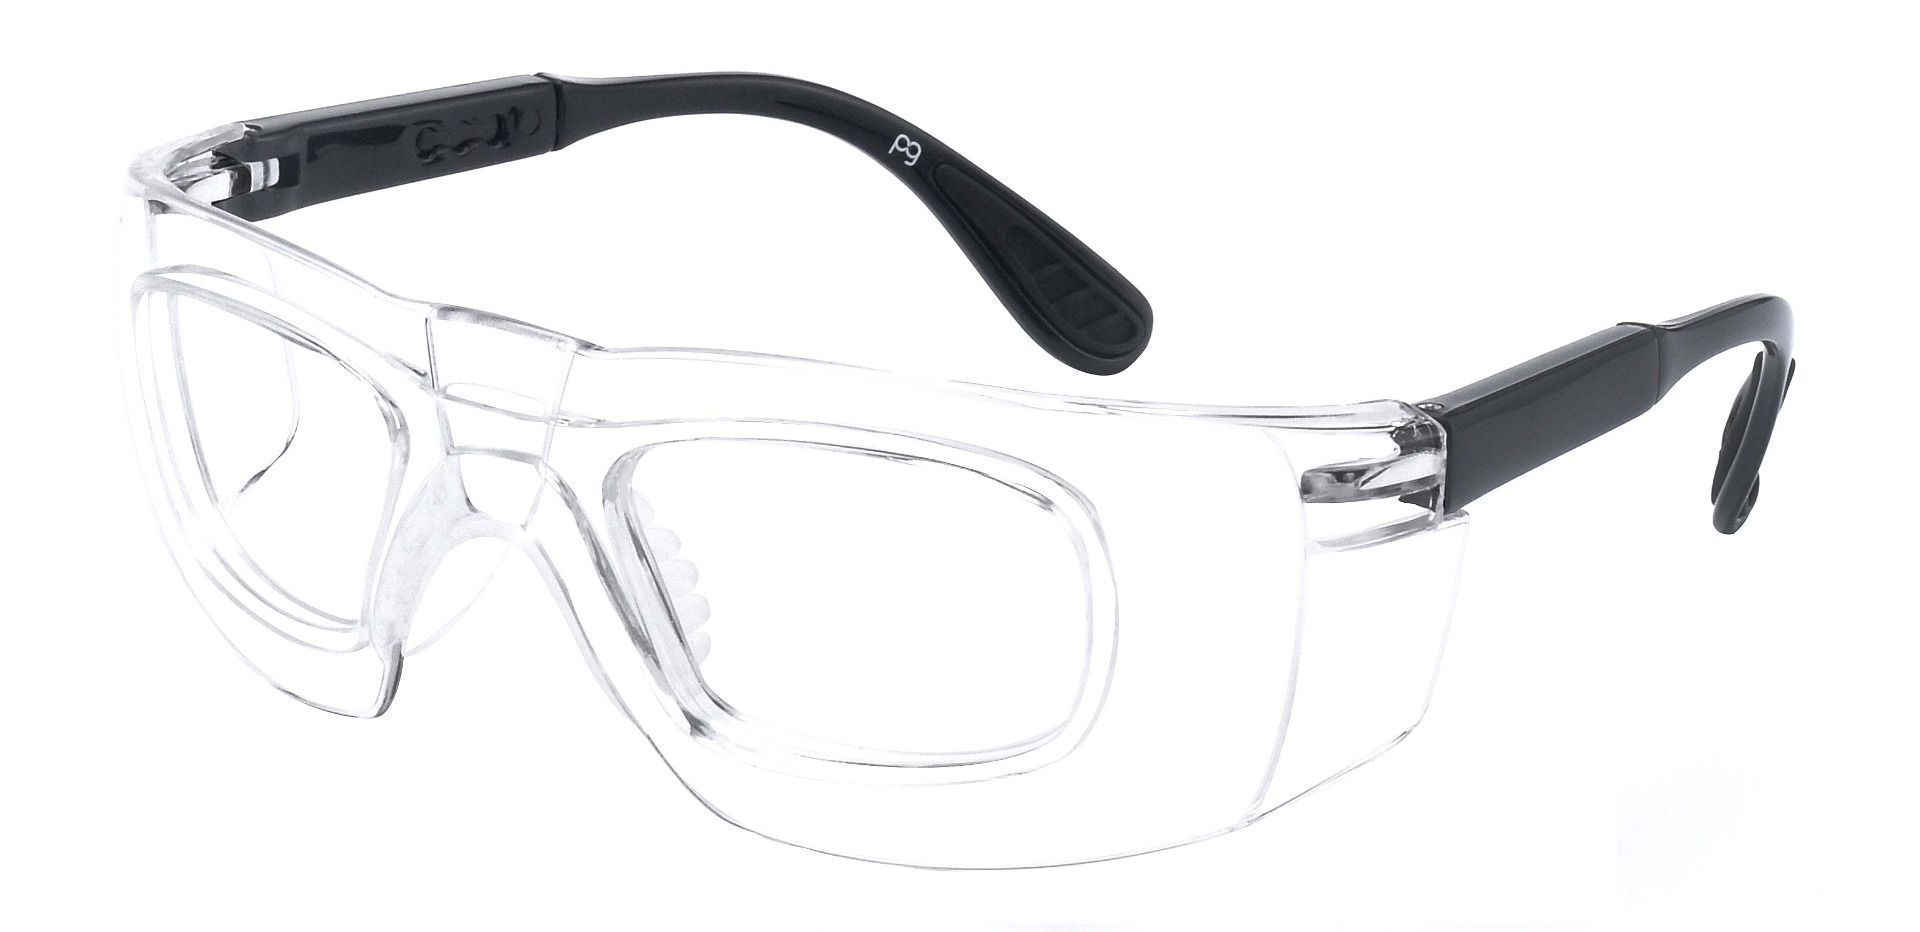 Hartford Sports Glasses Prescription Glasses - Clear